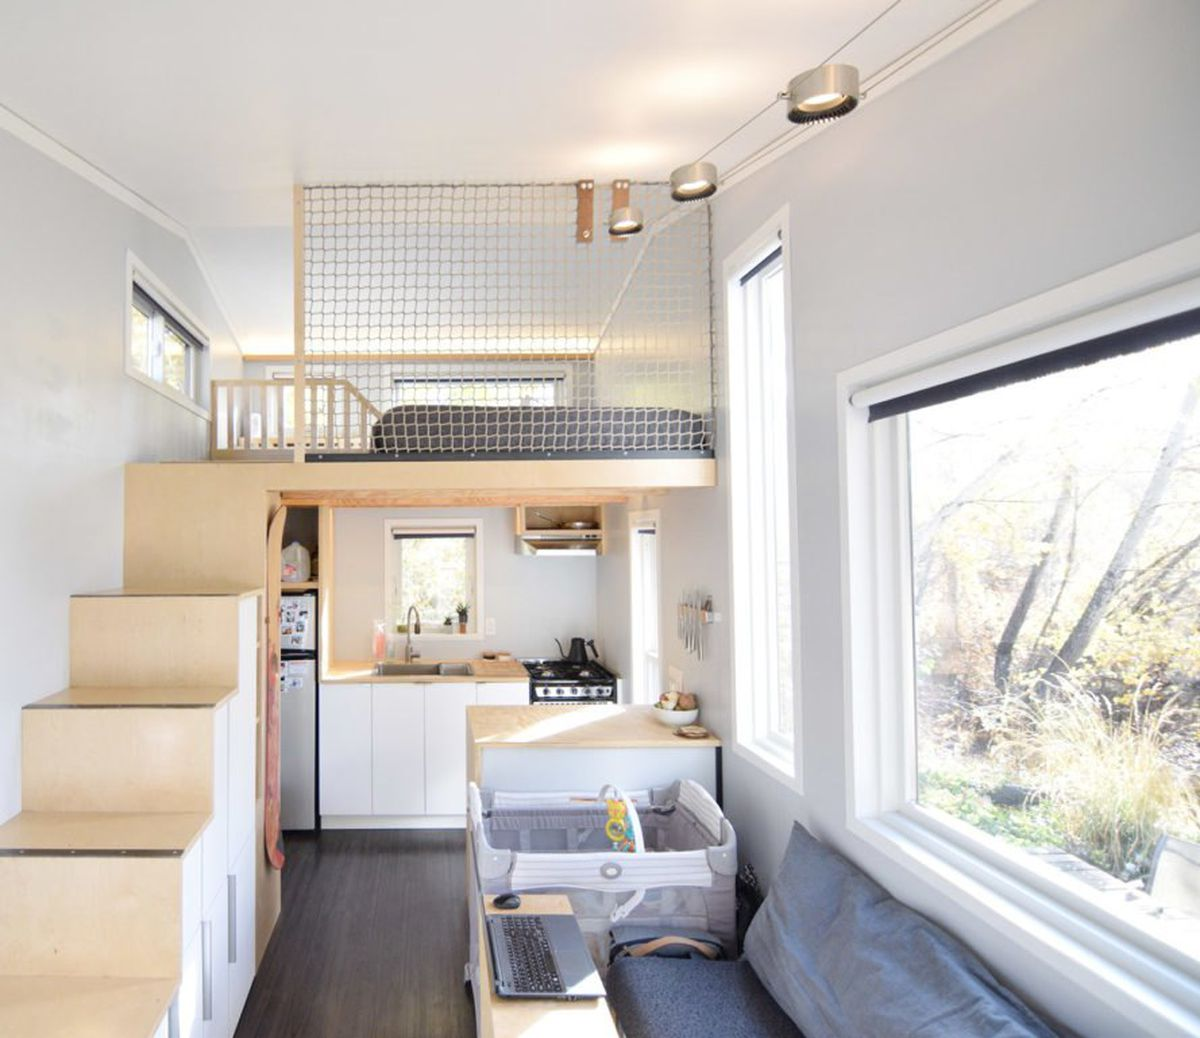 Tiny house makes room for outdoor gear—and a baby - Curbed